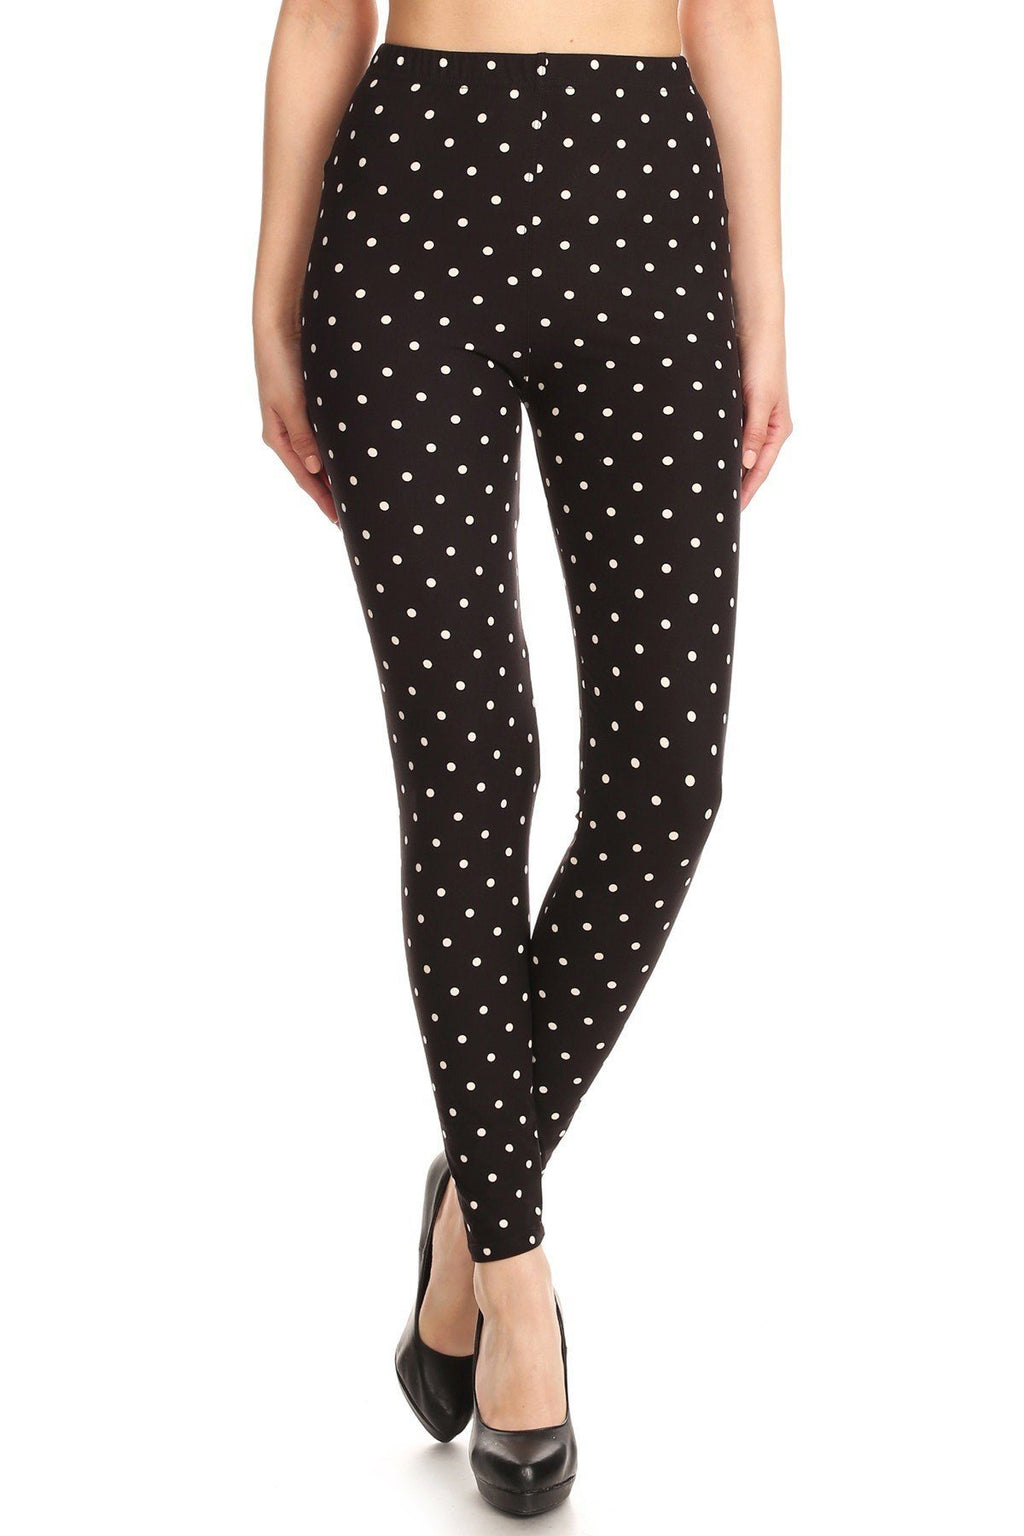 High Waisted Leggings With An Elastic Band In A White Polka Dot Print Over A Black Background - De Bawa Inc.